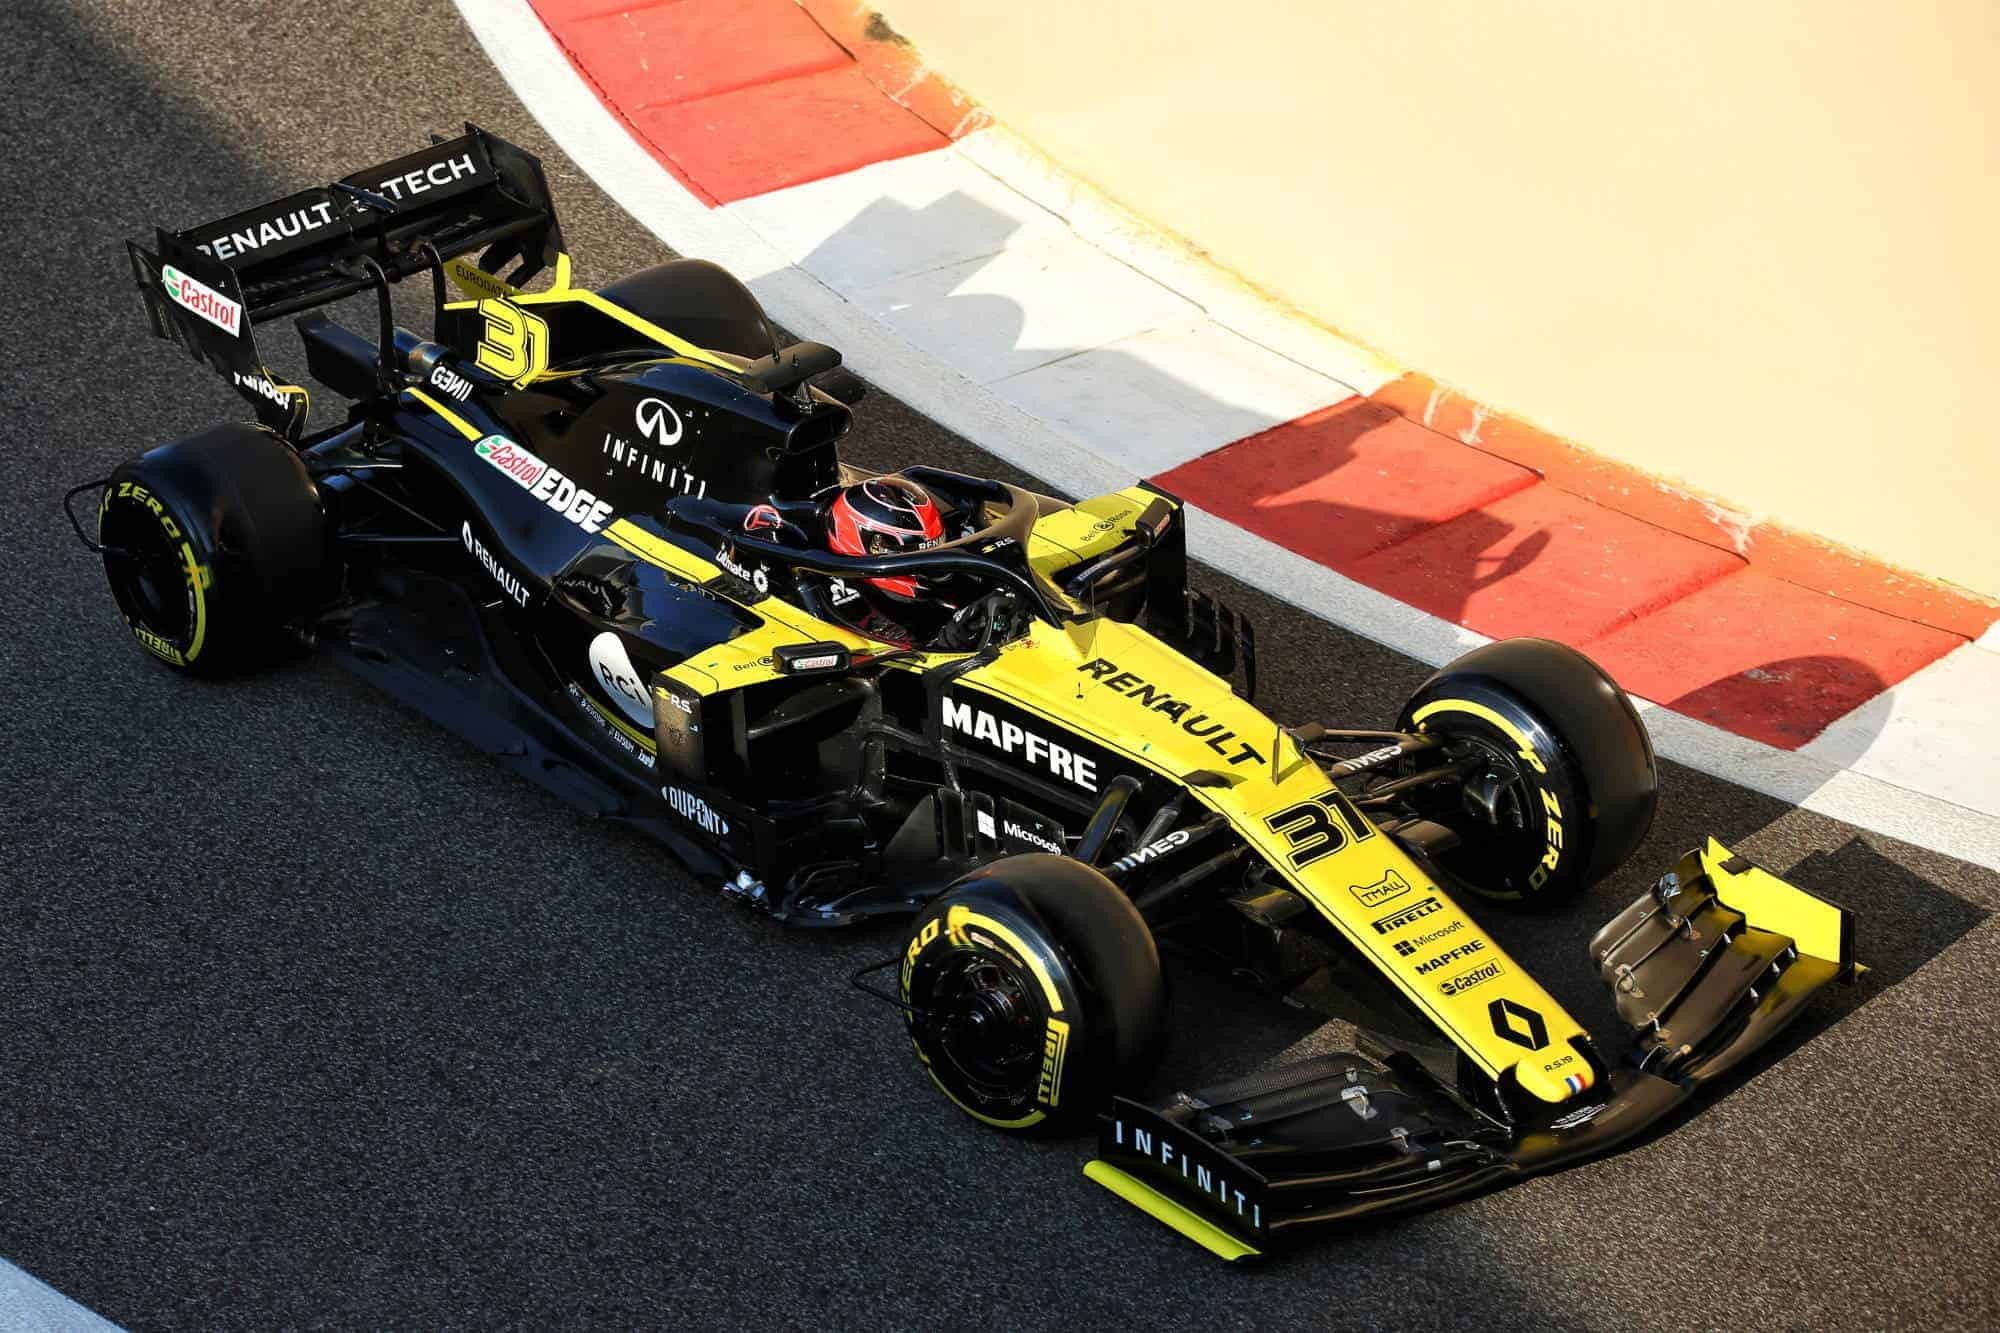 Ocon Renault F1 2019 post season Abu Dhabi test pitlane exit Photo Renault